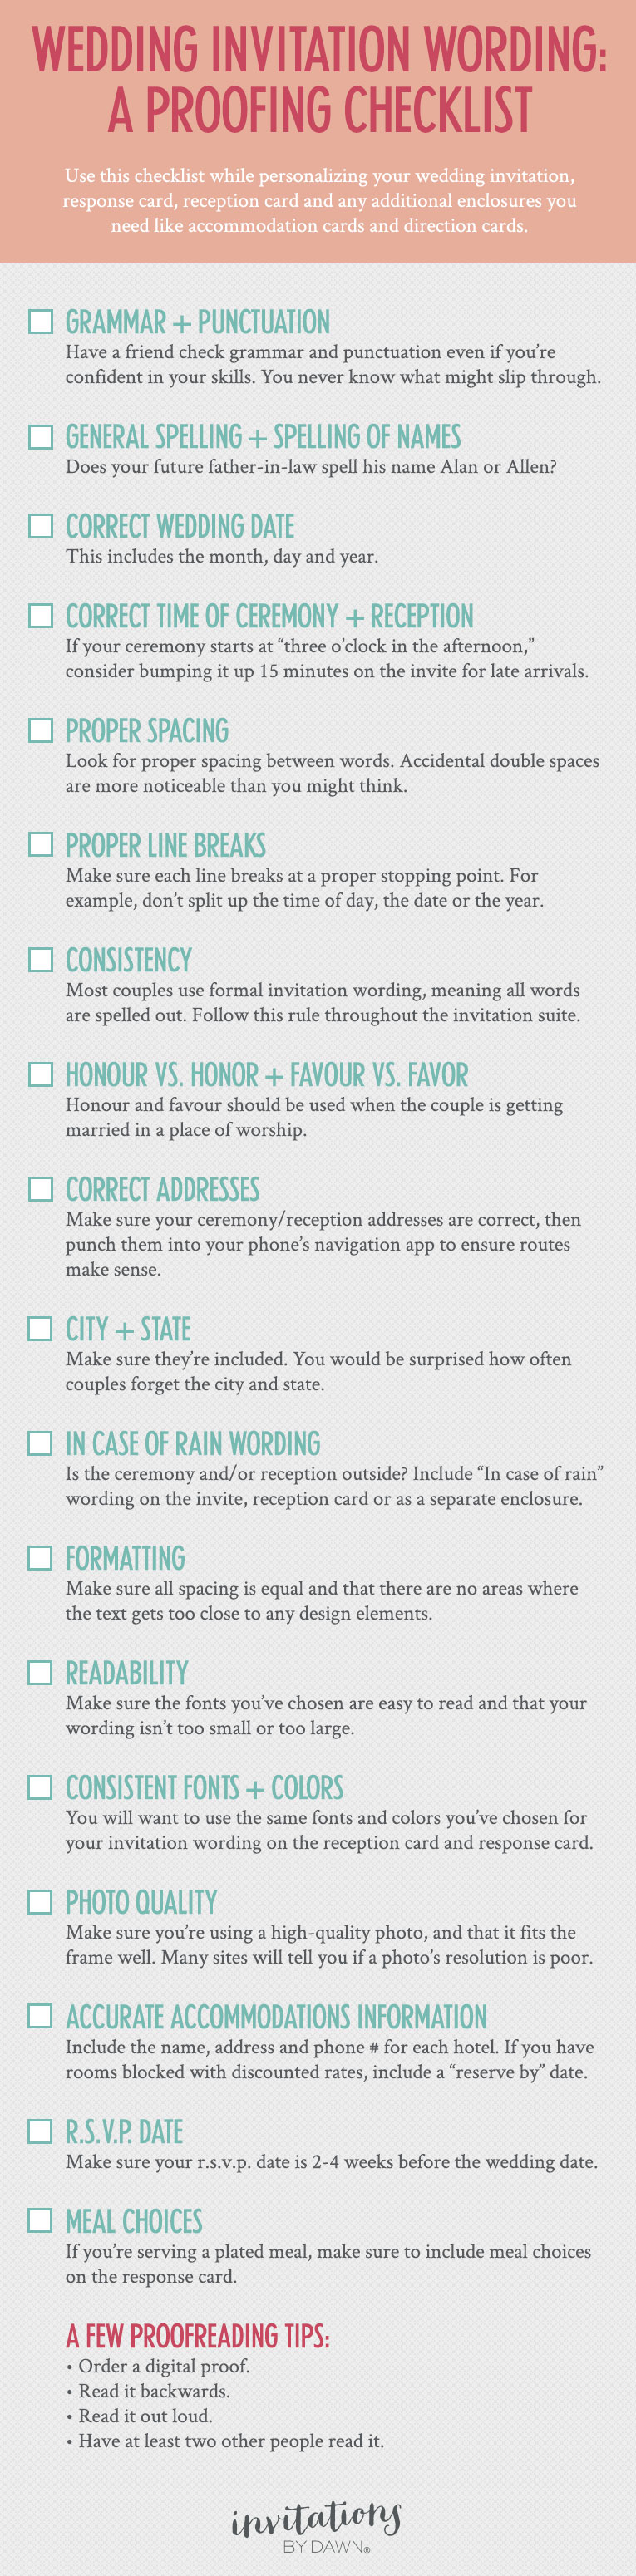 Wedding Invitation Checklist